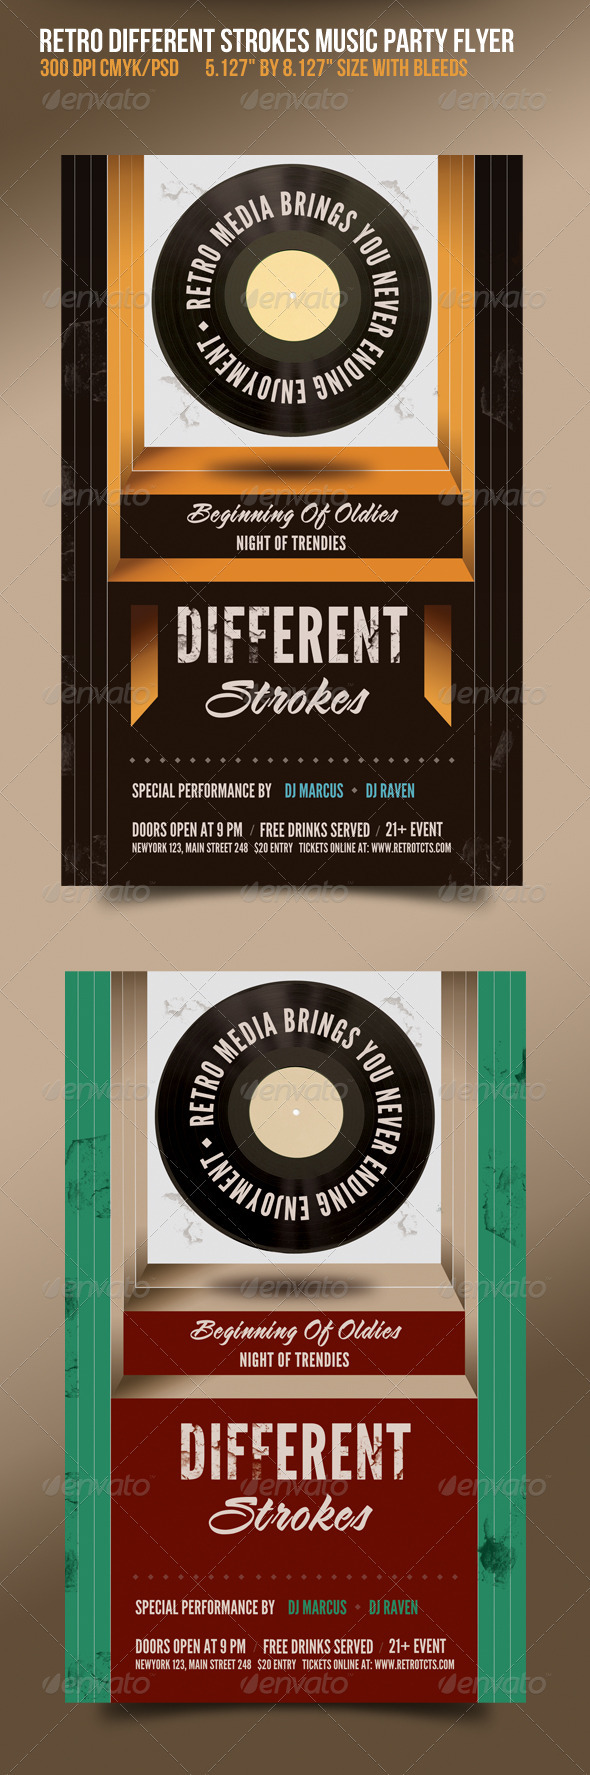 Different Strokes Retro Music Dance Party Flyer - Clubs & Parties Events